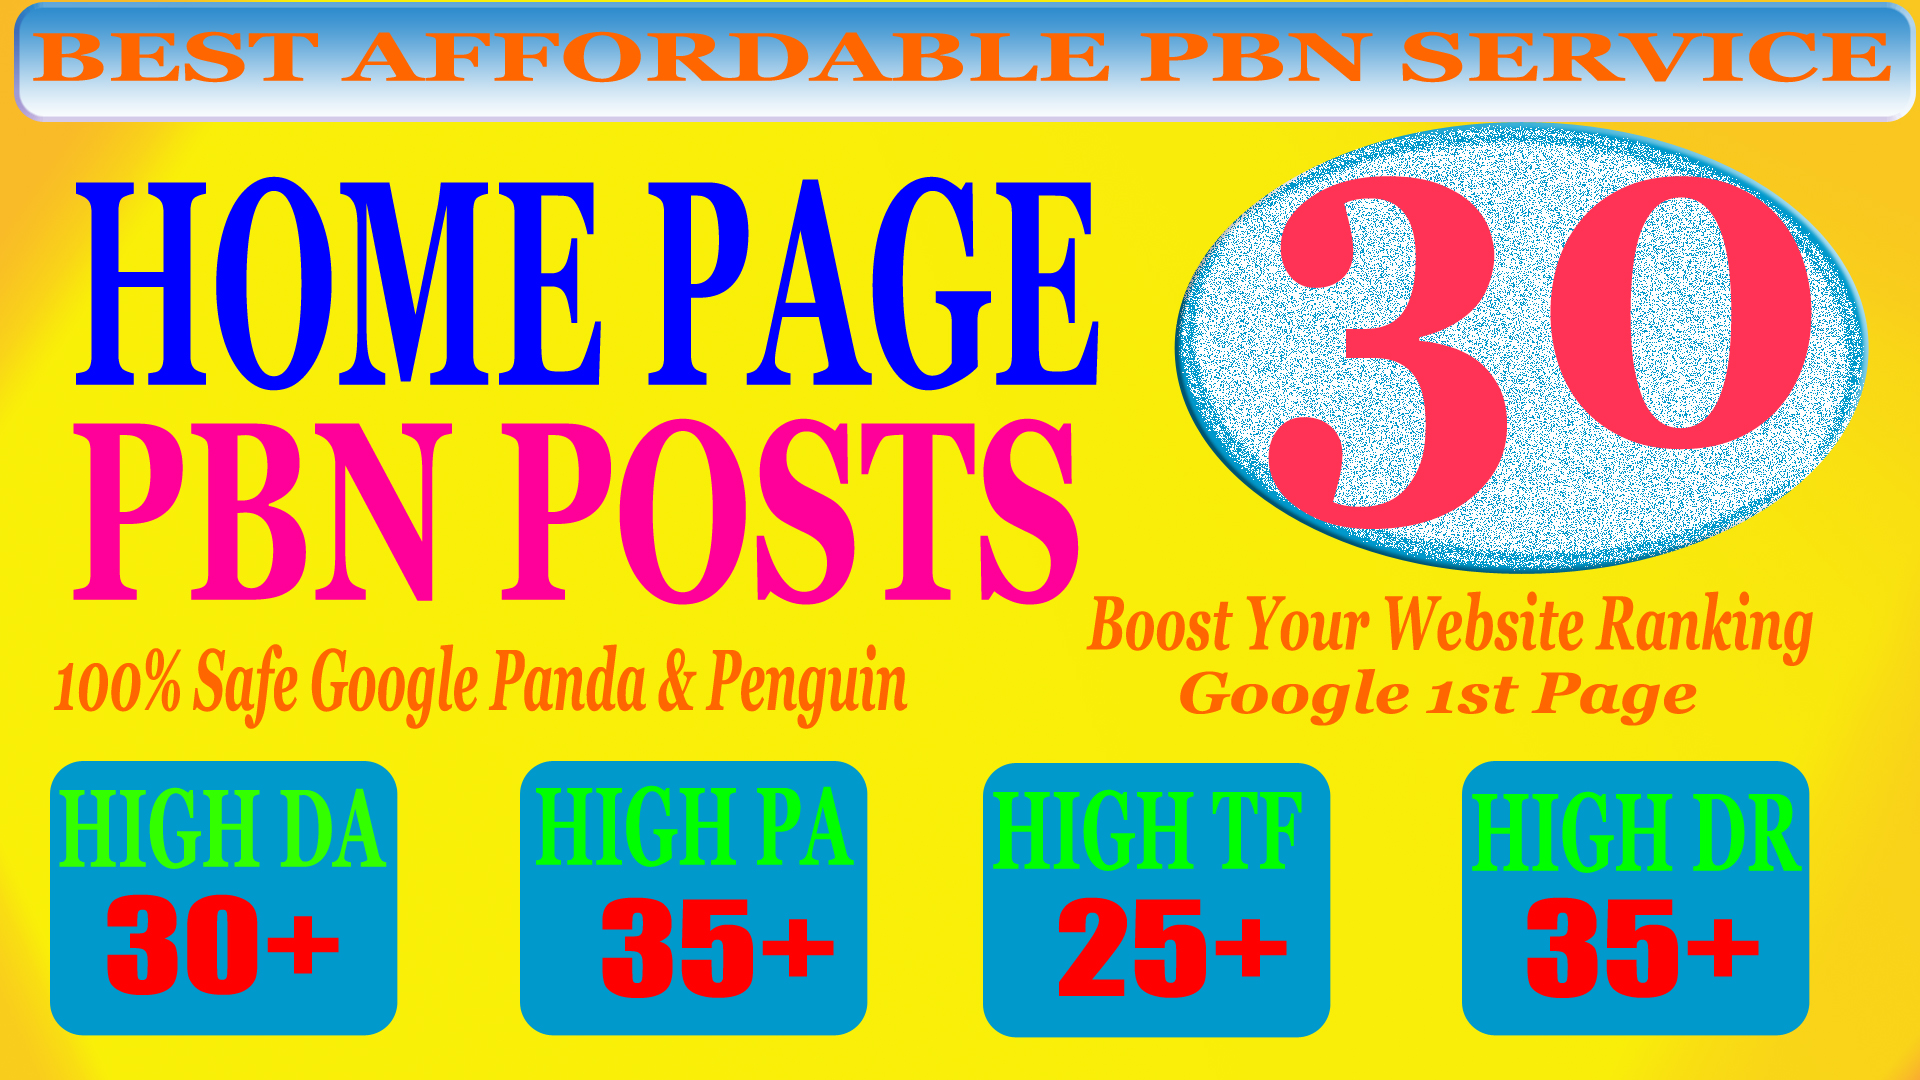 30 Homepage PBN Post with High DA PA CF TF 25+ Moz Authority Expired domain Backlinks